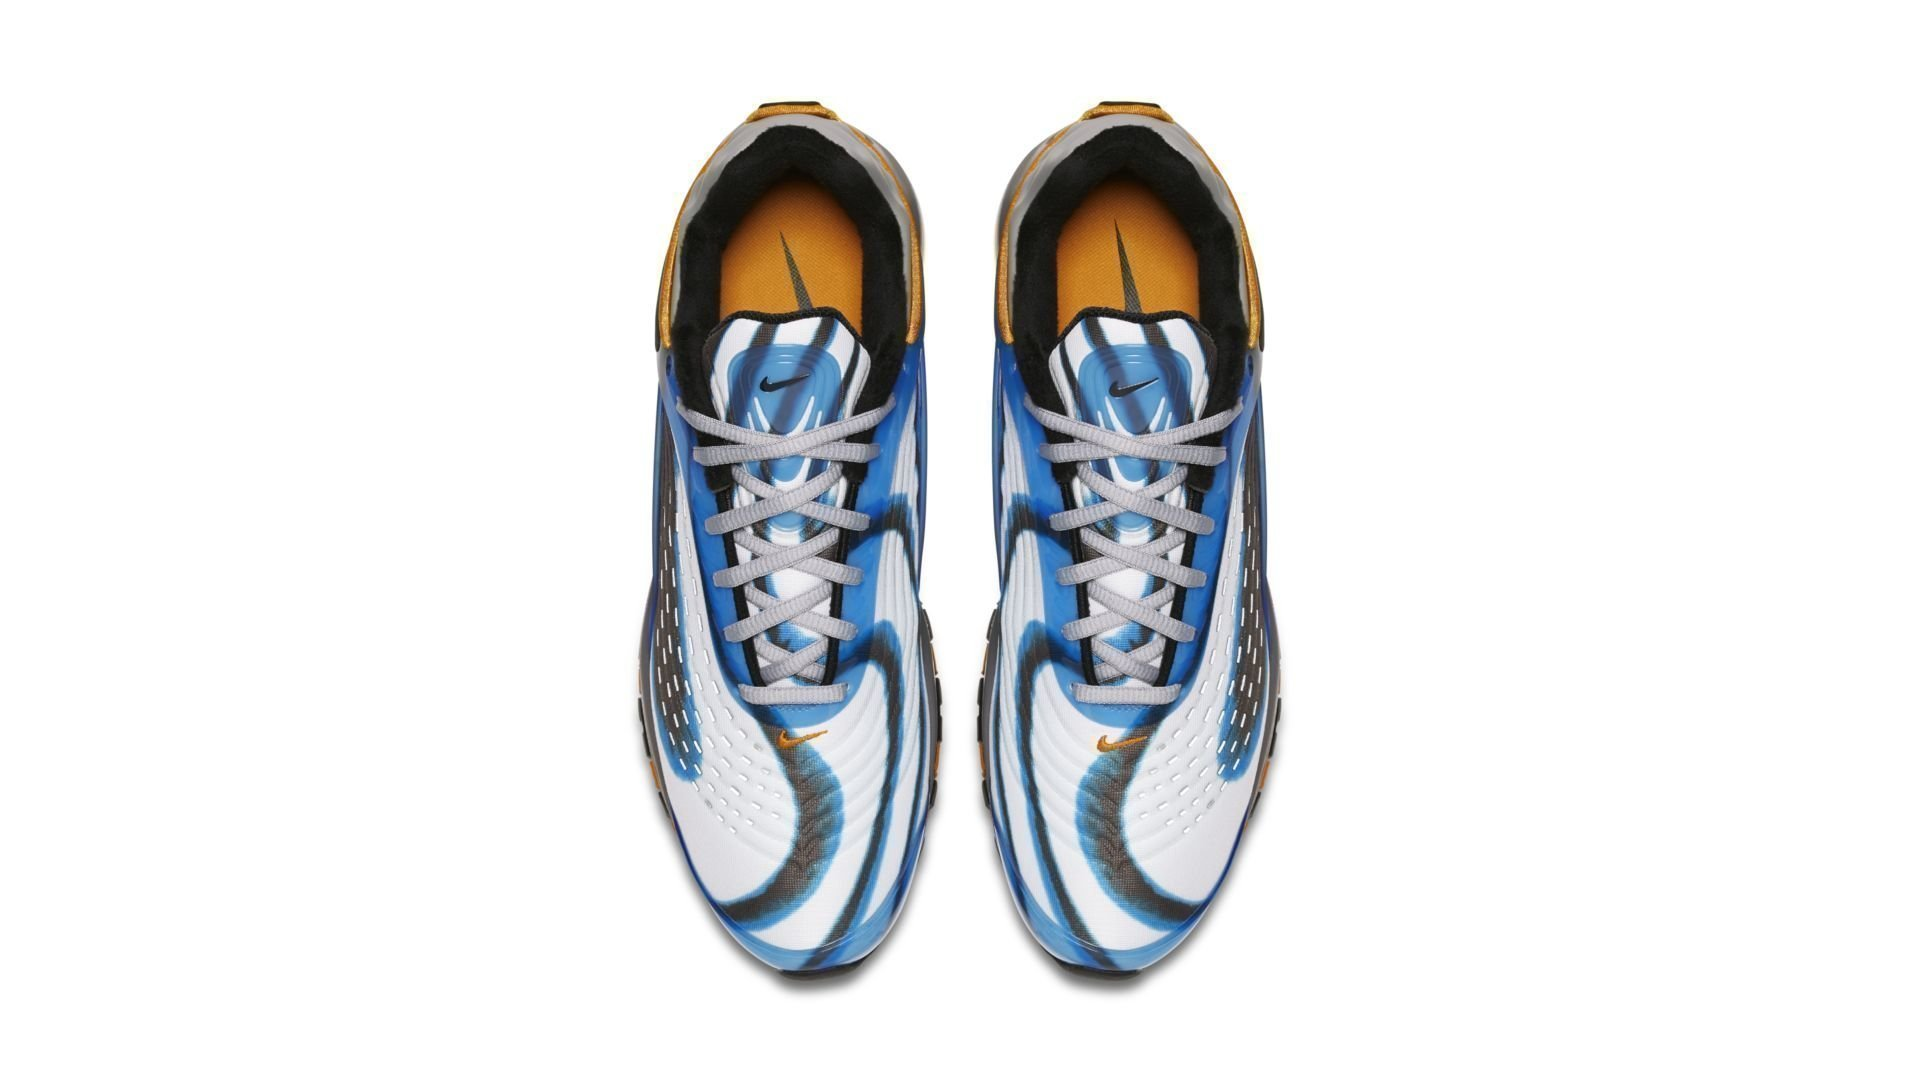 Nike Air Max Deluxe 'Blue Black' (AJ7831-401)